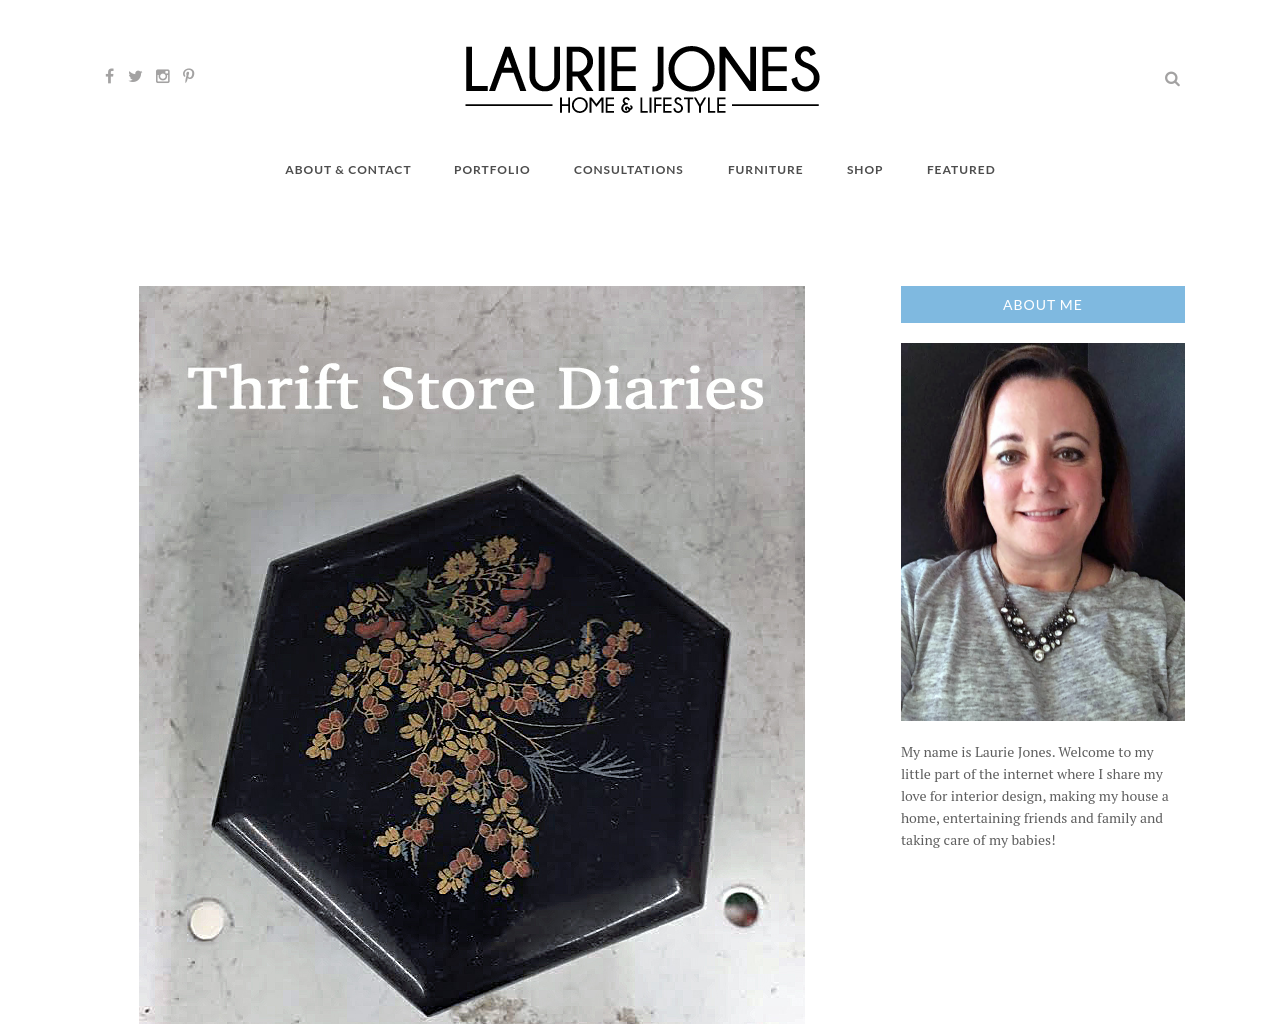 Laurie-Jones-Home-Advertising-Reviews-Pricing